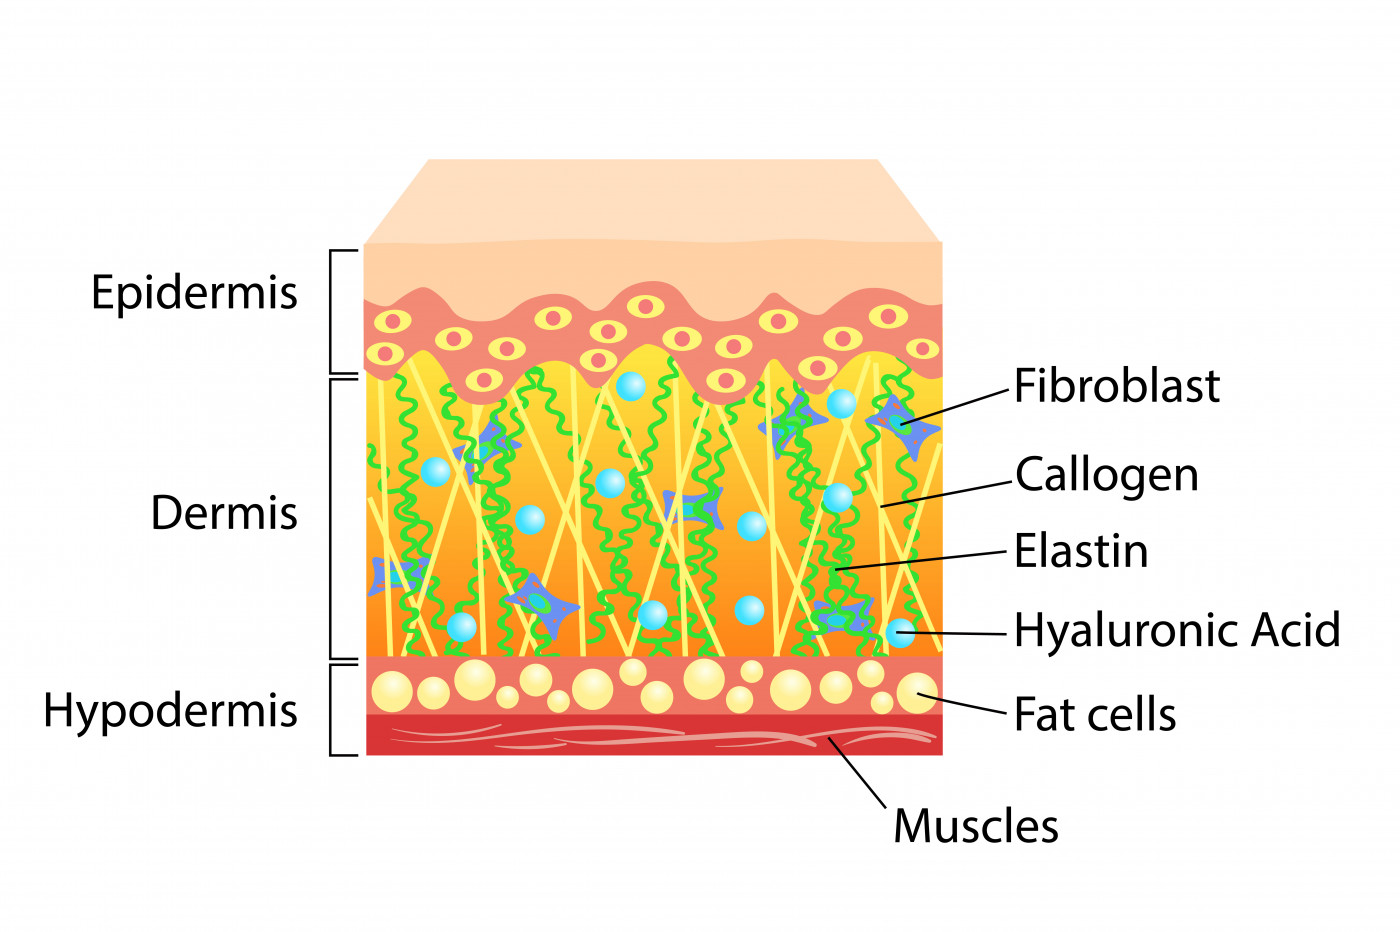 RDEB Wounds Heal Better with Fibroblast Skin Injections in Study